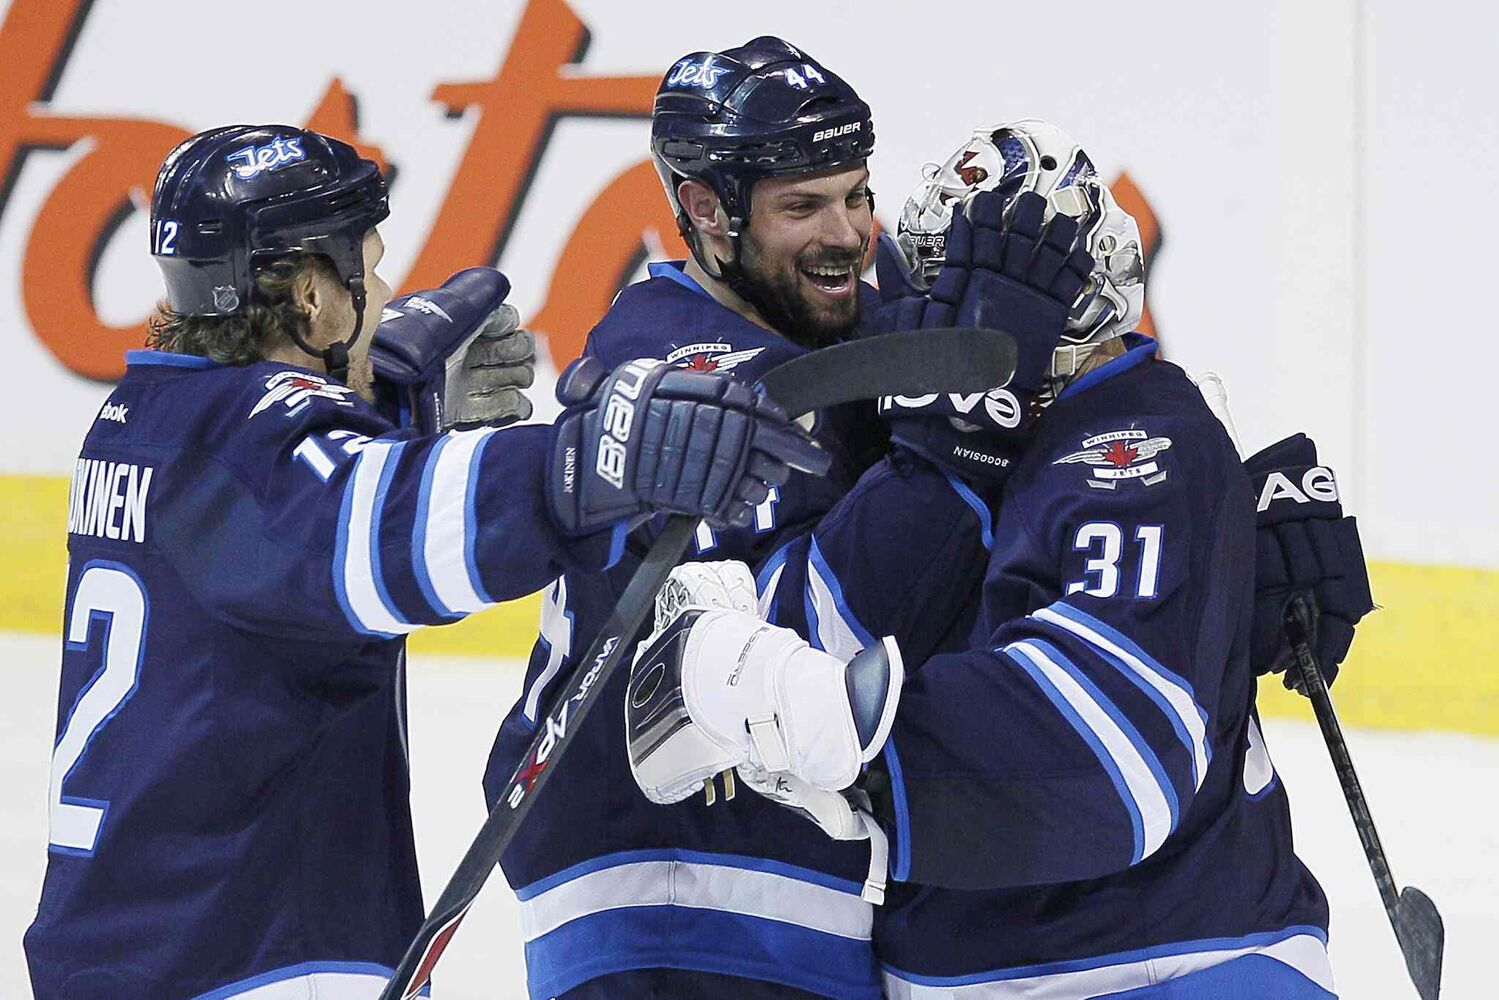 Winnipeg Jets' Olli Jokinen (12), Zach Bogosian (44), and goaltender Ondrej Pavelec (31) celebrate a win over the Phoenix Coyotes in a shoot-out during NHL action in Winnipeg on Thursday. The Jets won 3-2.